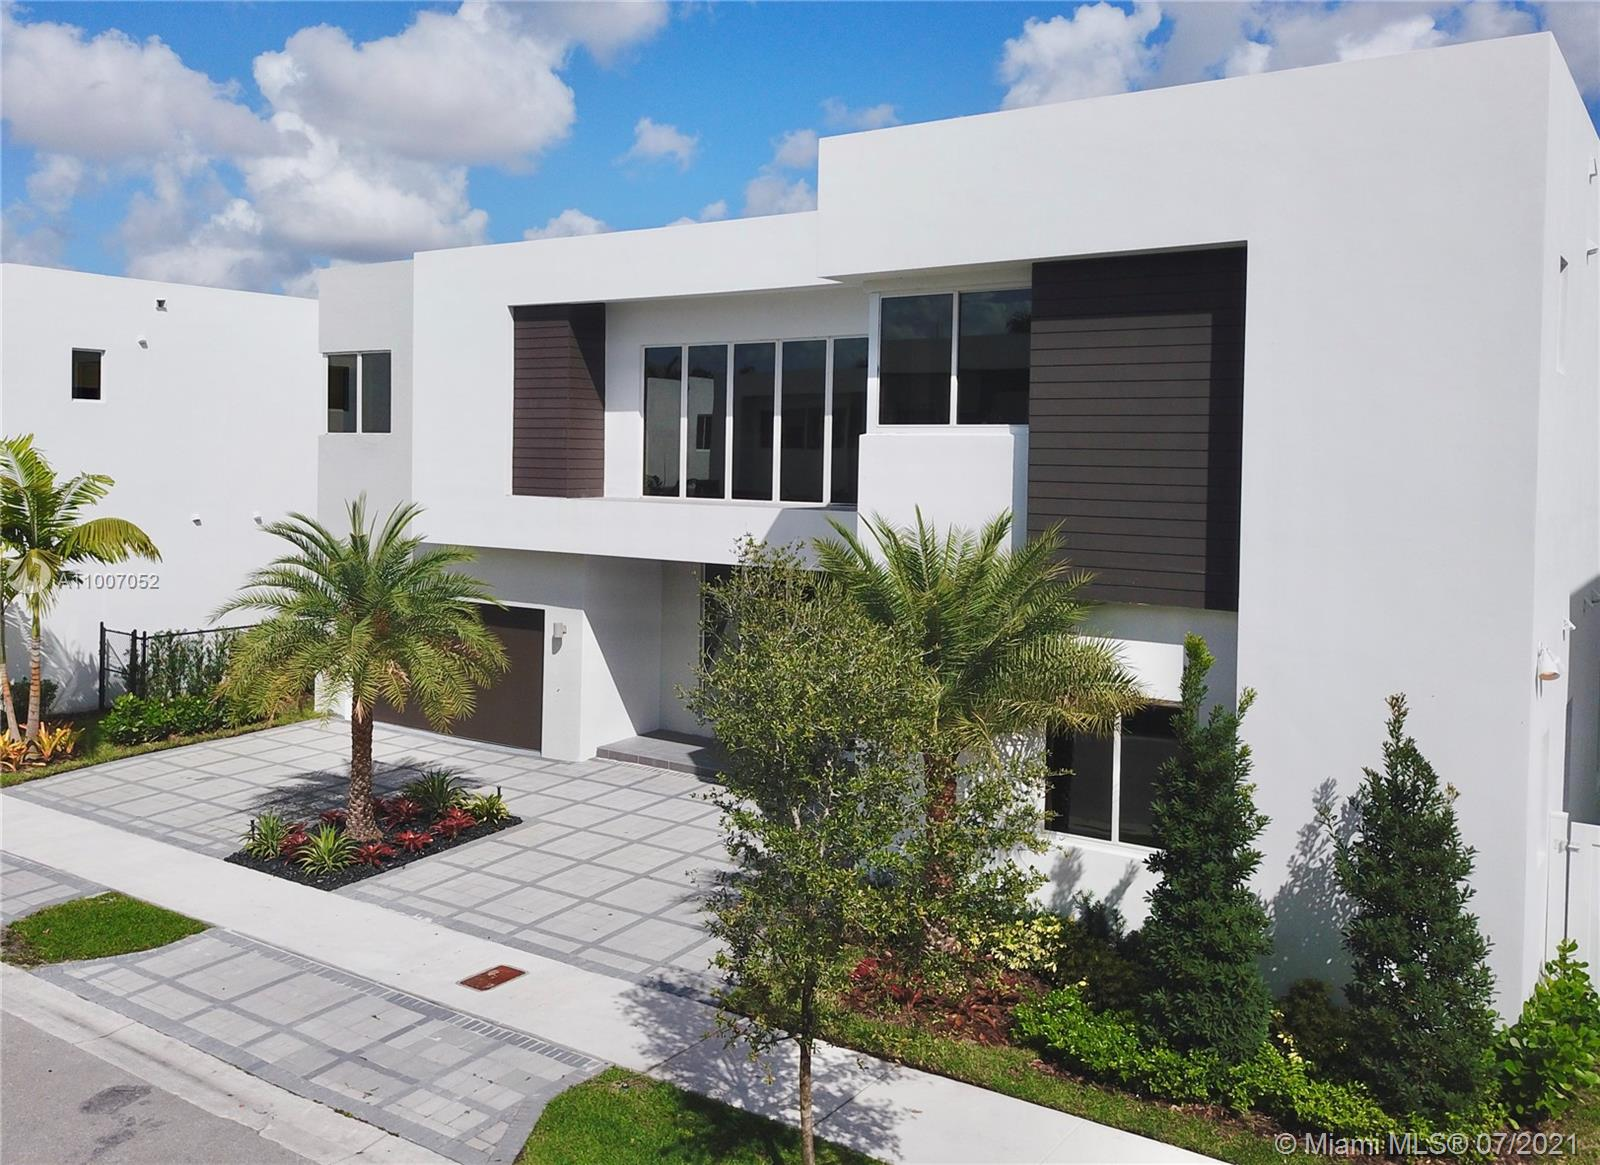 Photo of 7509 NW 103 Pl, Doral, FL 33178